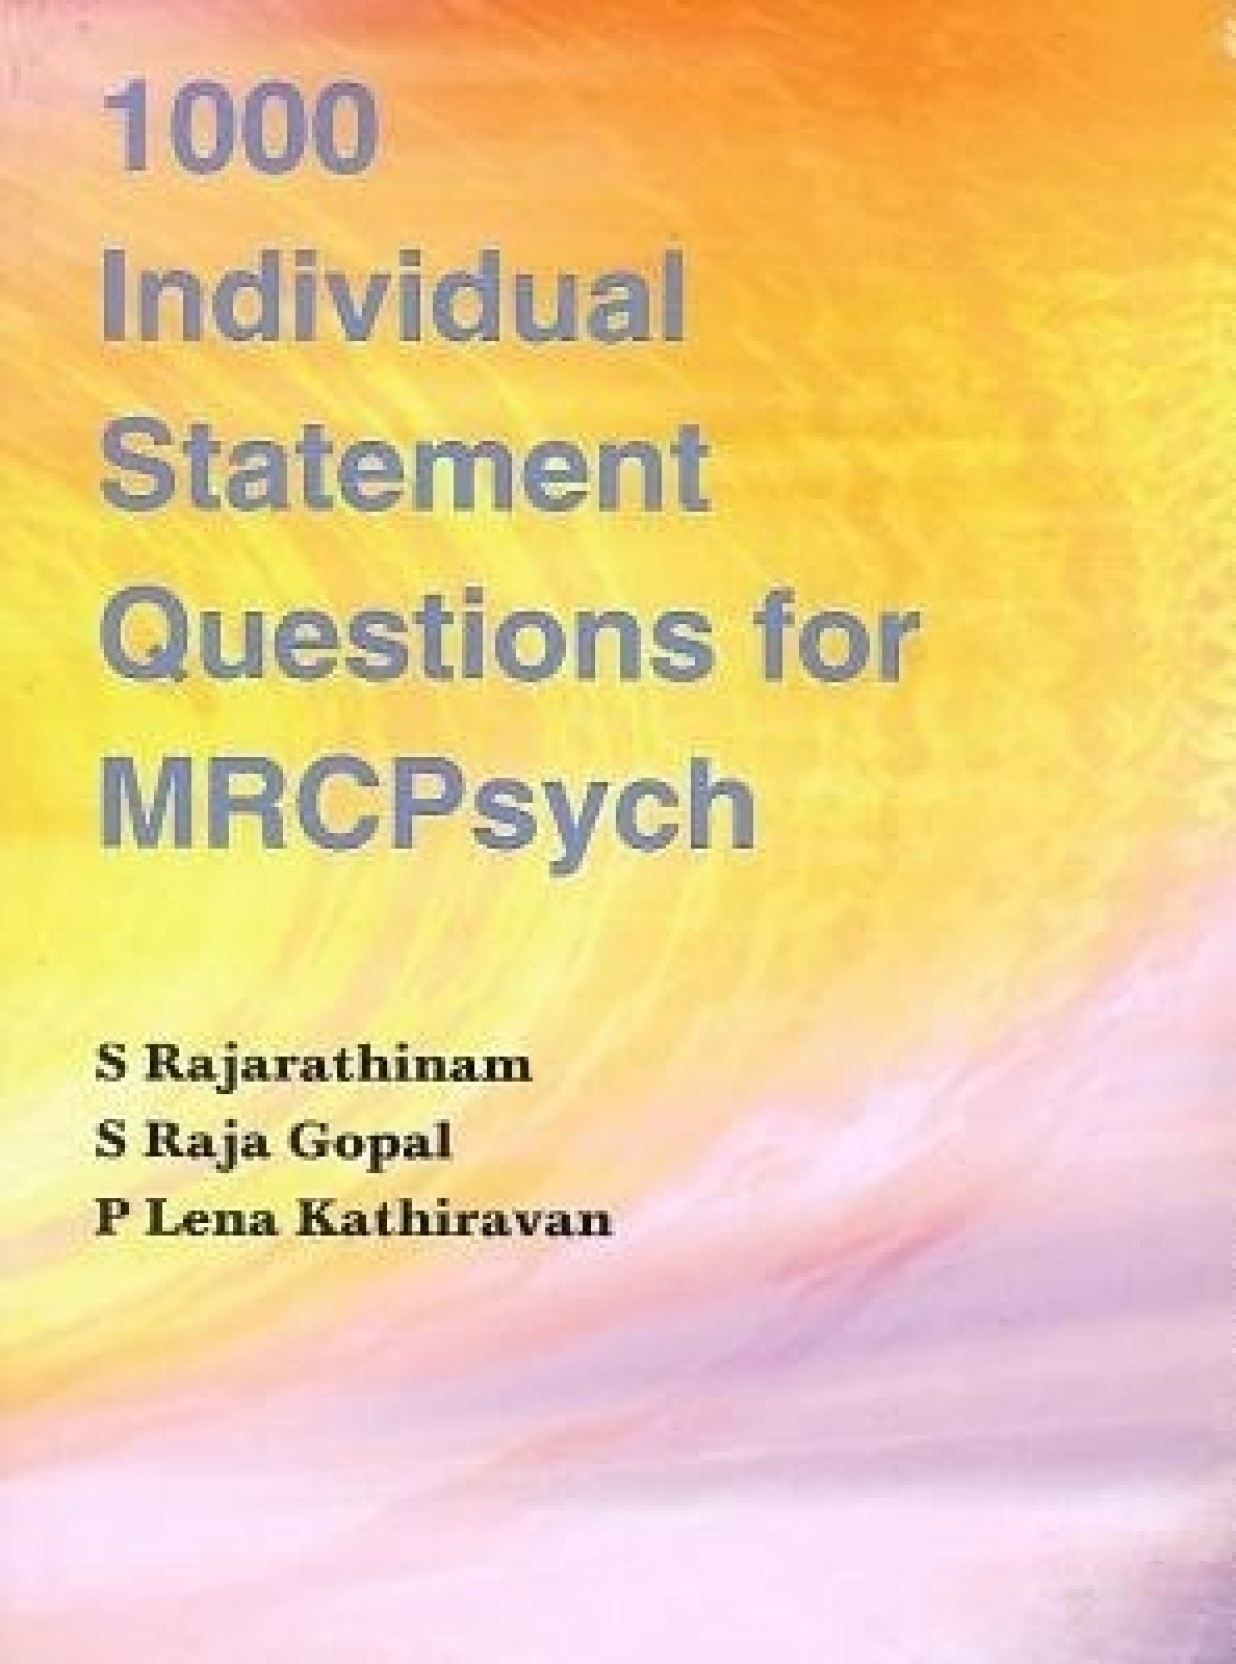 1000 Individual Statement Questions for Mrcpsych. ADD TO CART